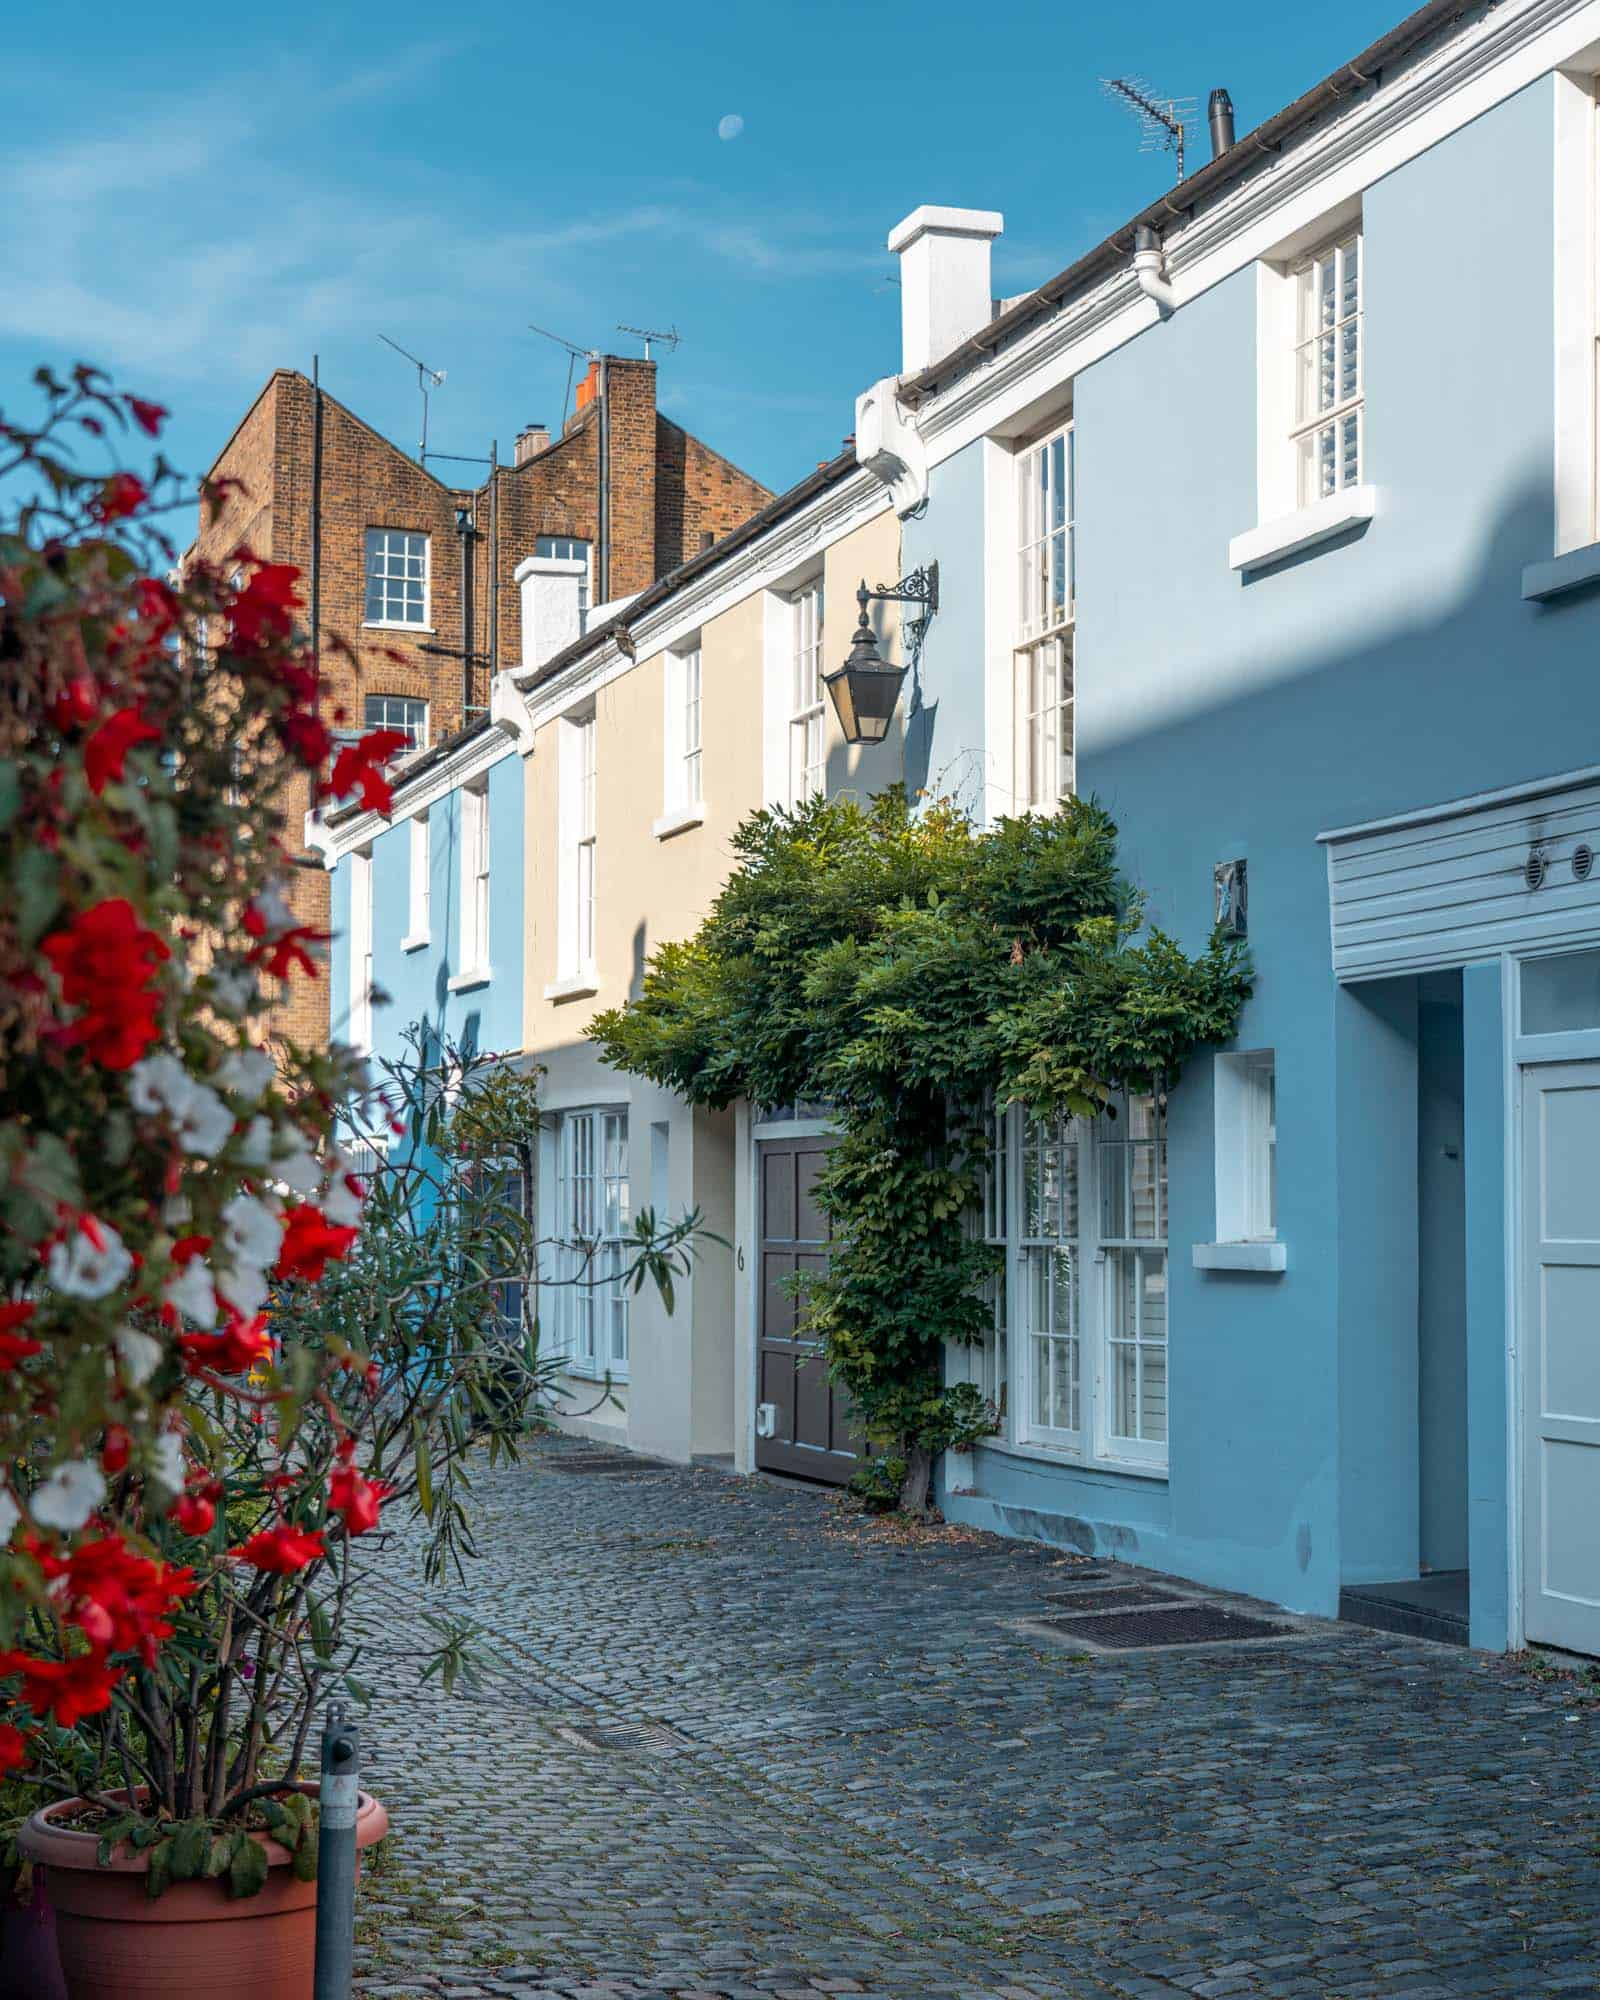 Norland Place pretty street Notting Hill London